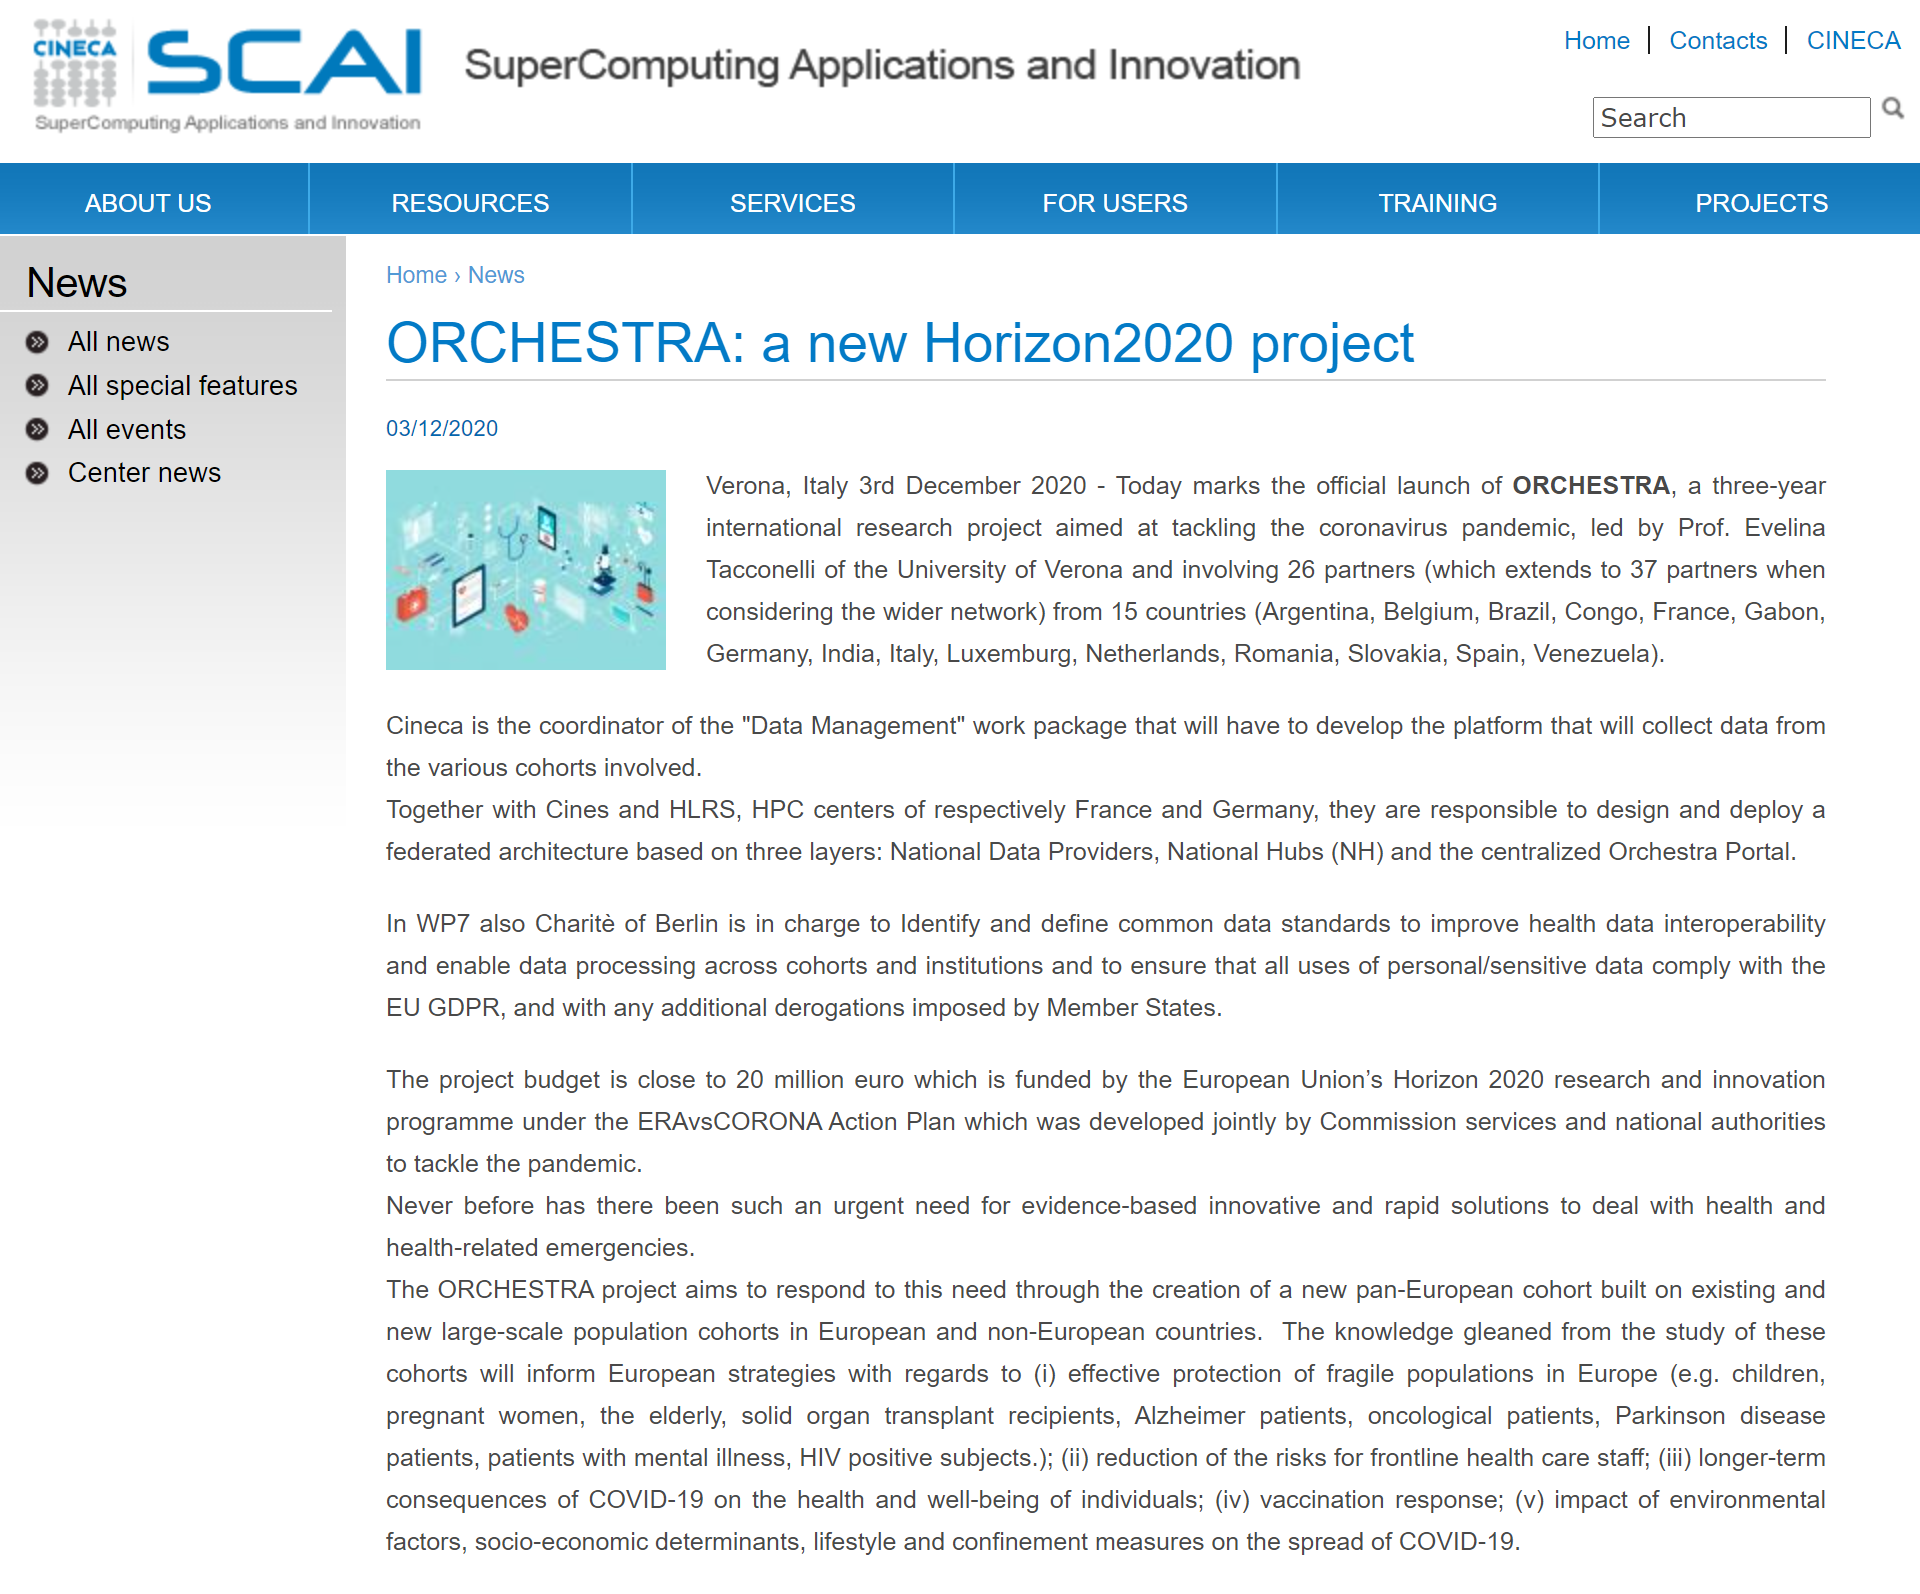 ORCHESTRA: a new Horizon2020 project